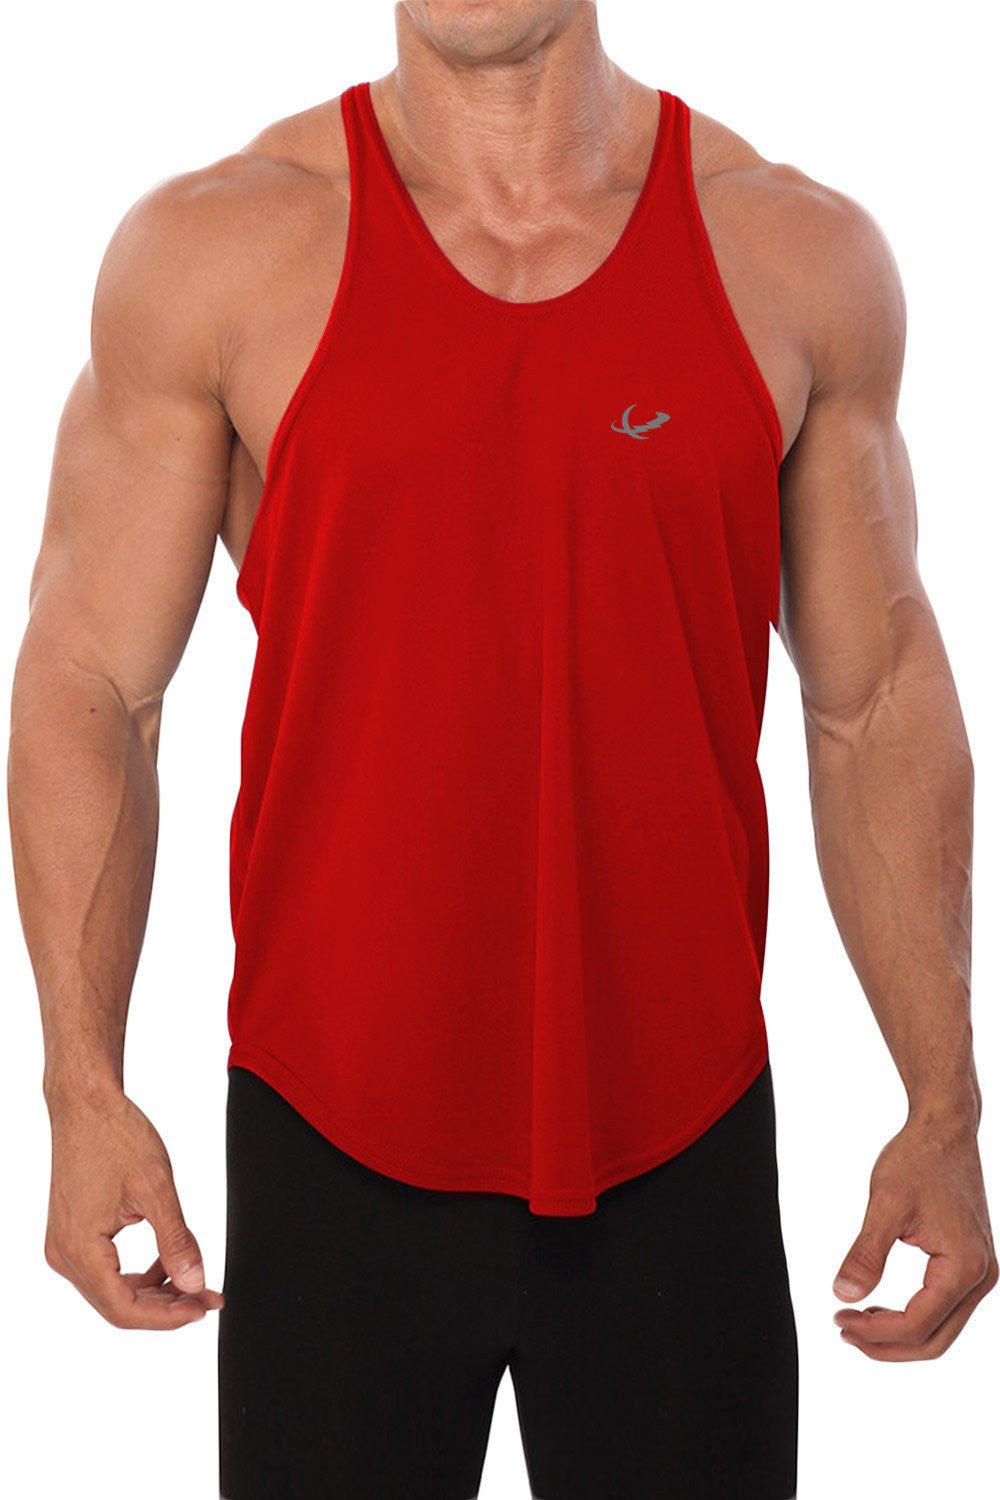 superior quality popular brand hot-selling discount DRI-FIT Stringer Tank Top